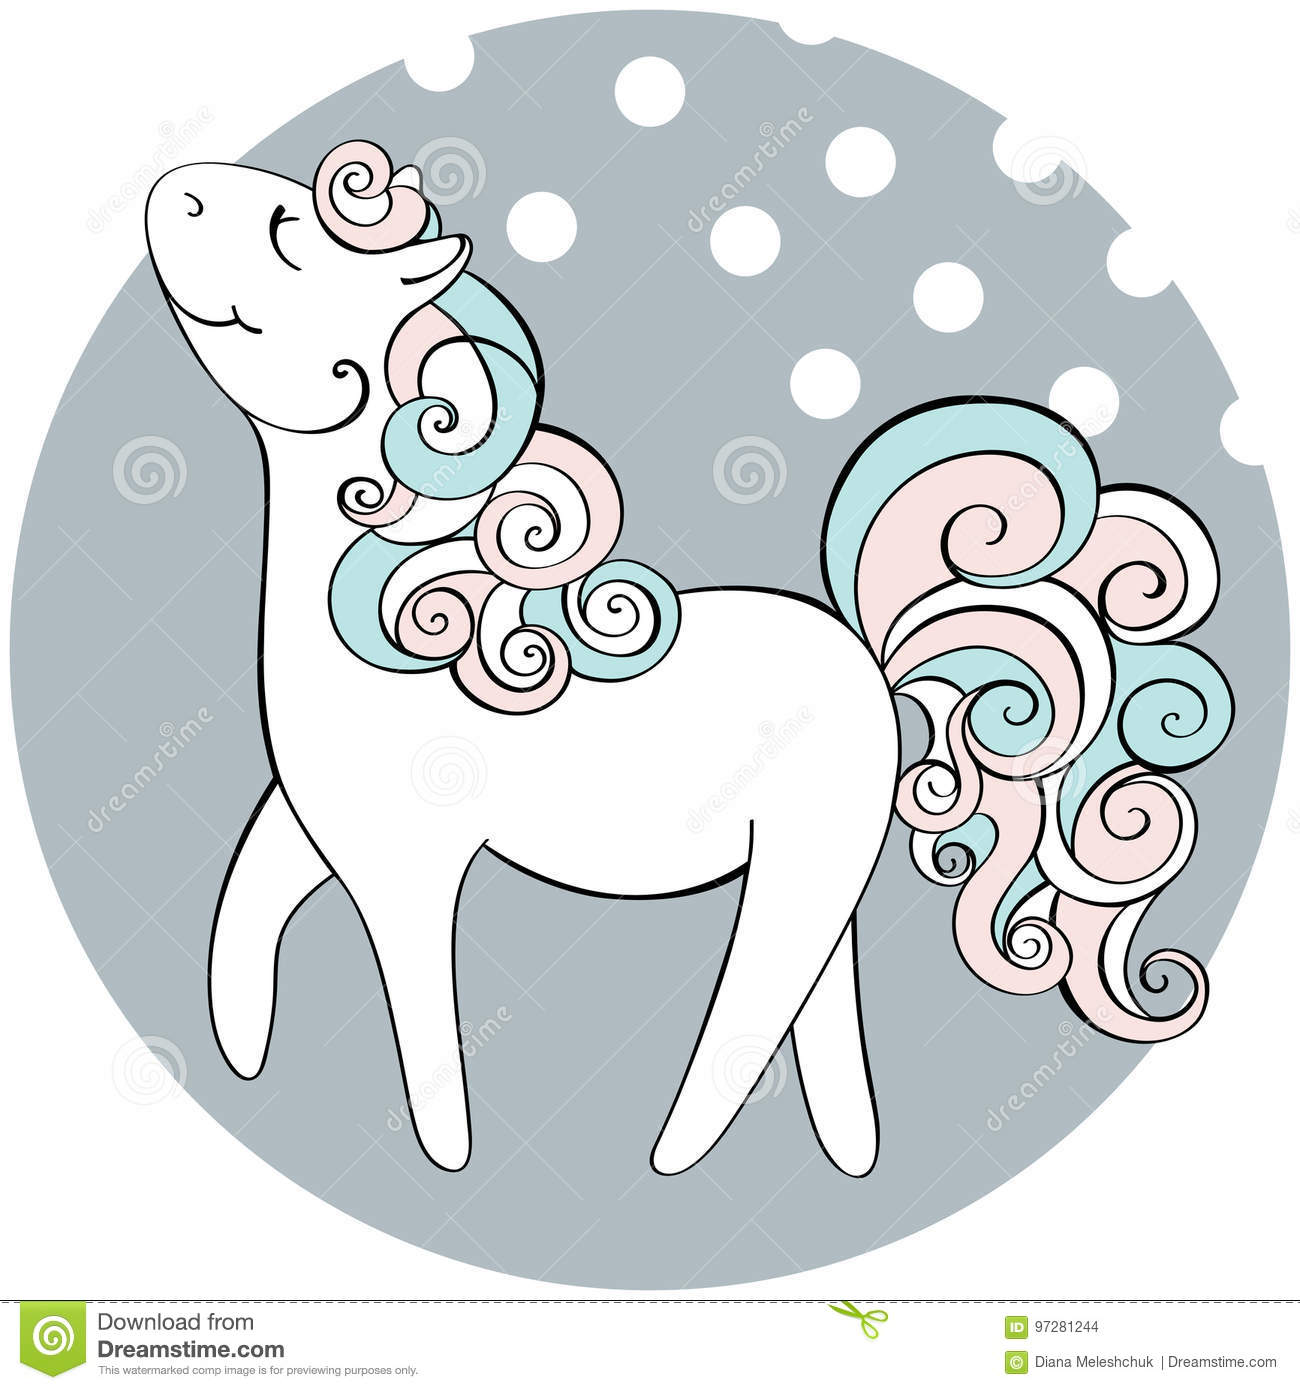 Cute Hand Drawn Horse Vector Doodle Illustration Stock Vector Illustration Of Fabric Horse 97281244